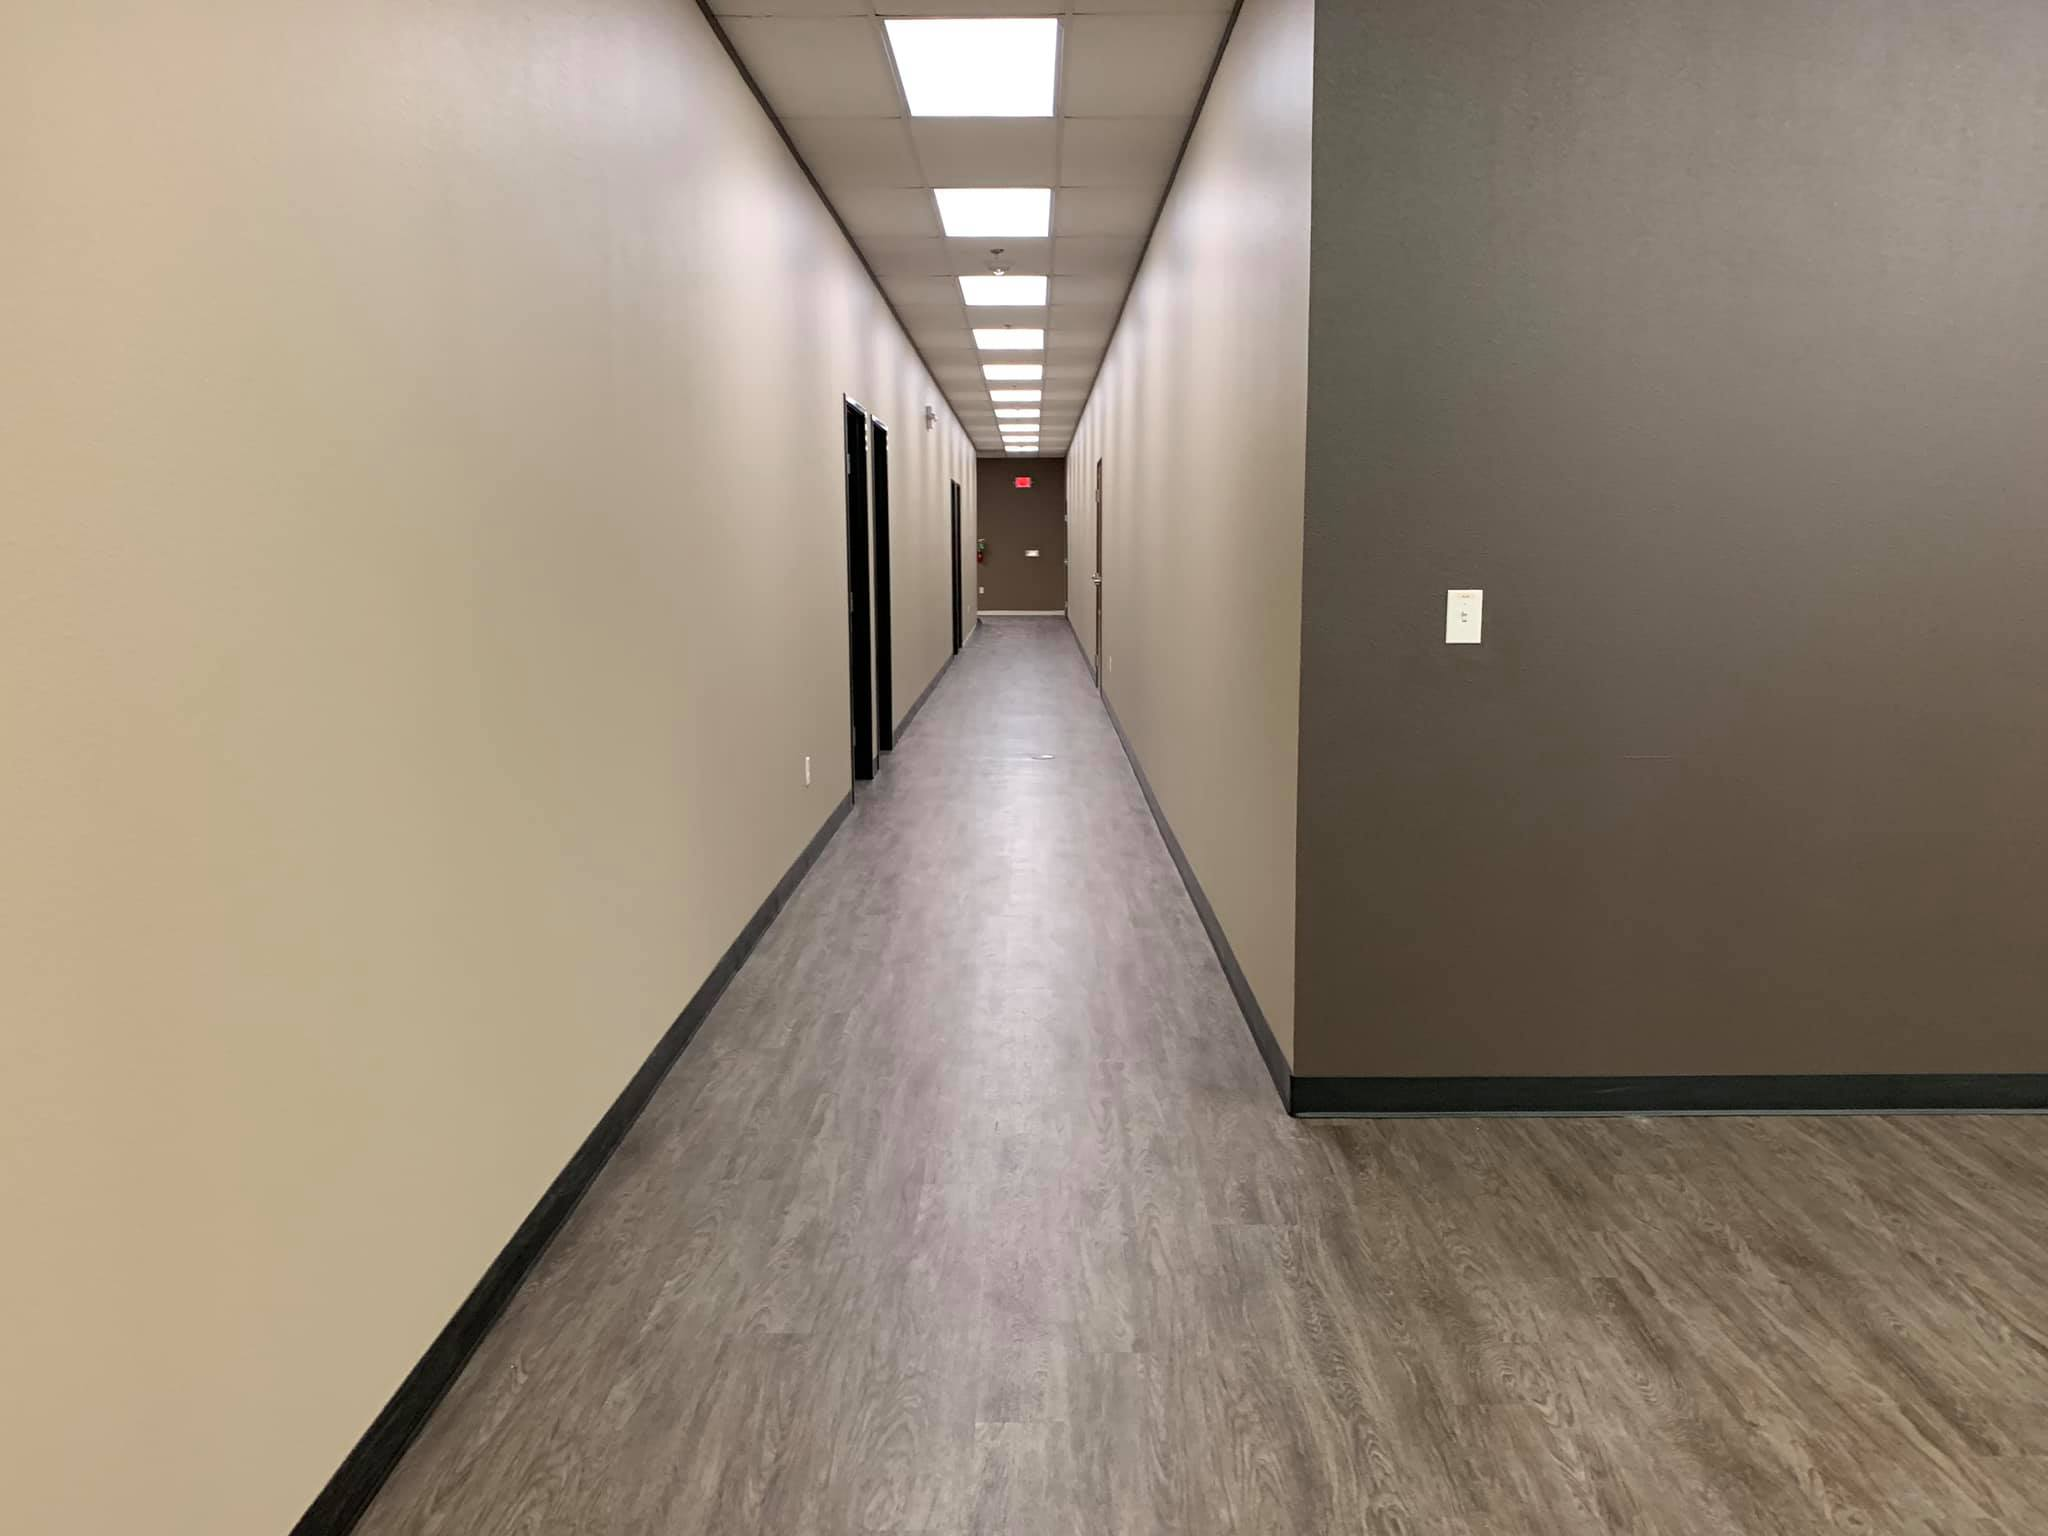 Meeting, Office & Conference Rooms - Includes three 190 square foot rooms.Includes one 200 square foot conference room and one 235 square foot conference room.Easy access to main room, lounge area and 3 restrooms.Furnishings upon request.Event planning upon request.